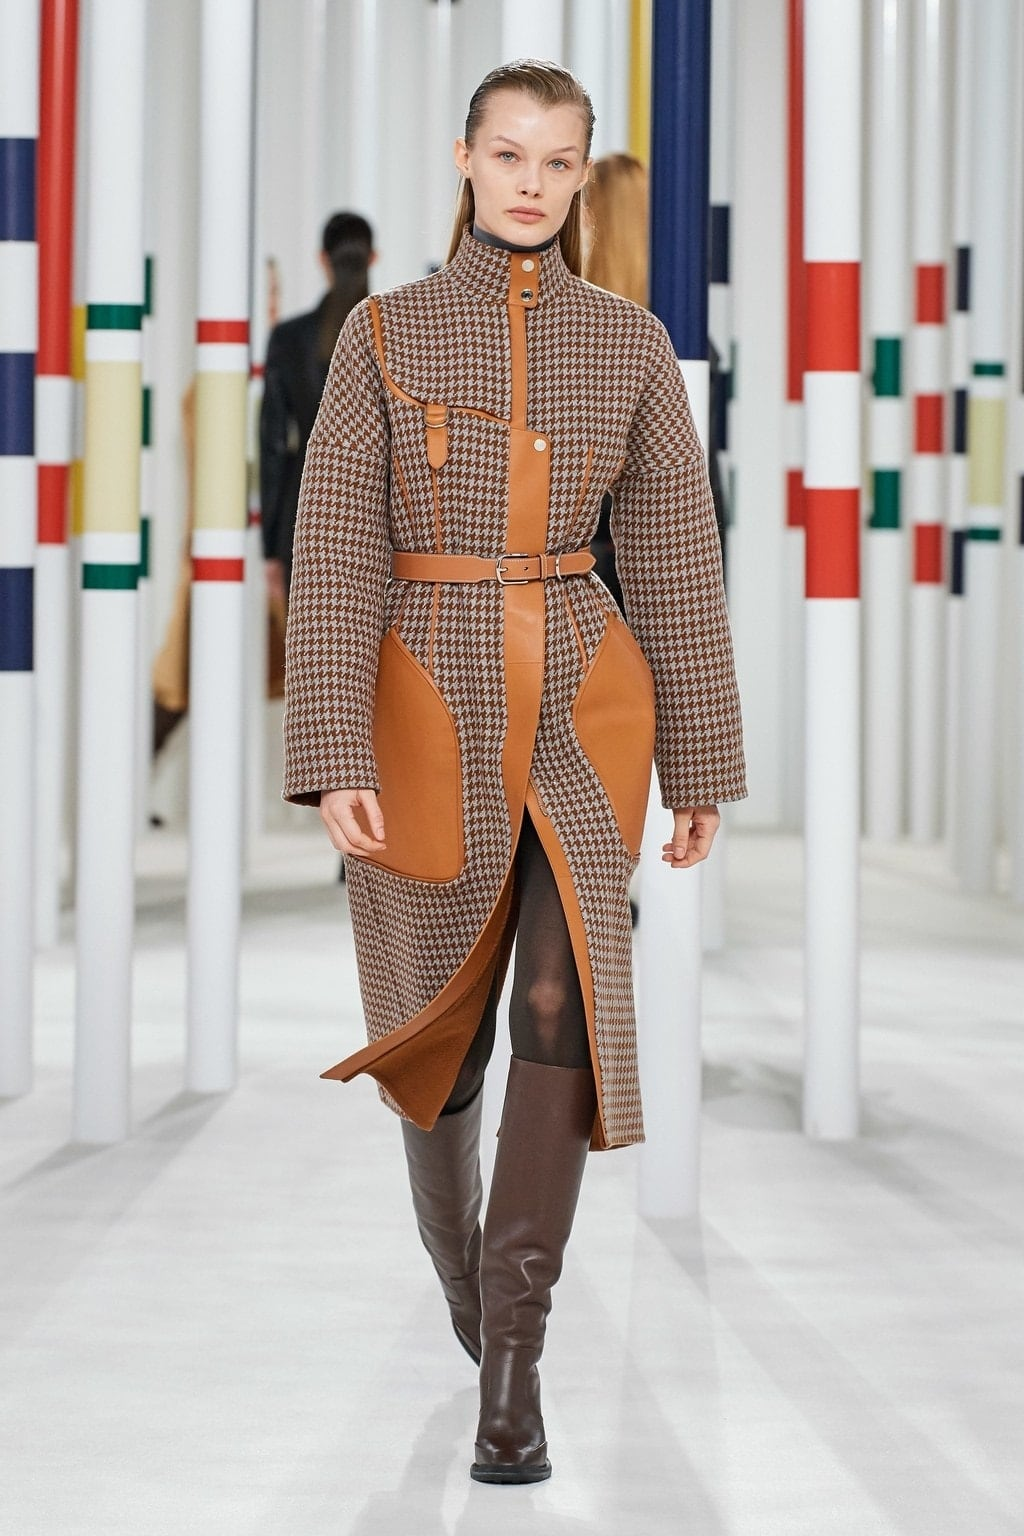 HERMES-fall-winter-2020-2021 Top 10 Fashion Brands Rising in 2021